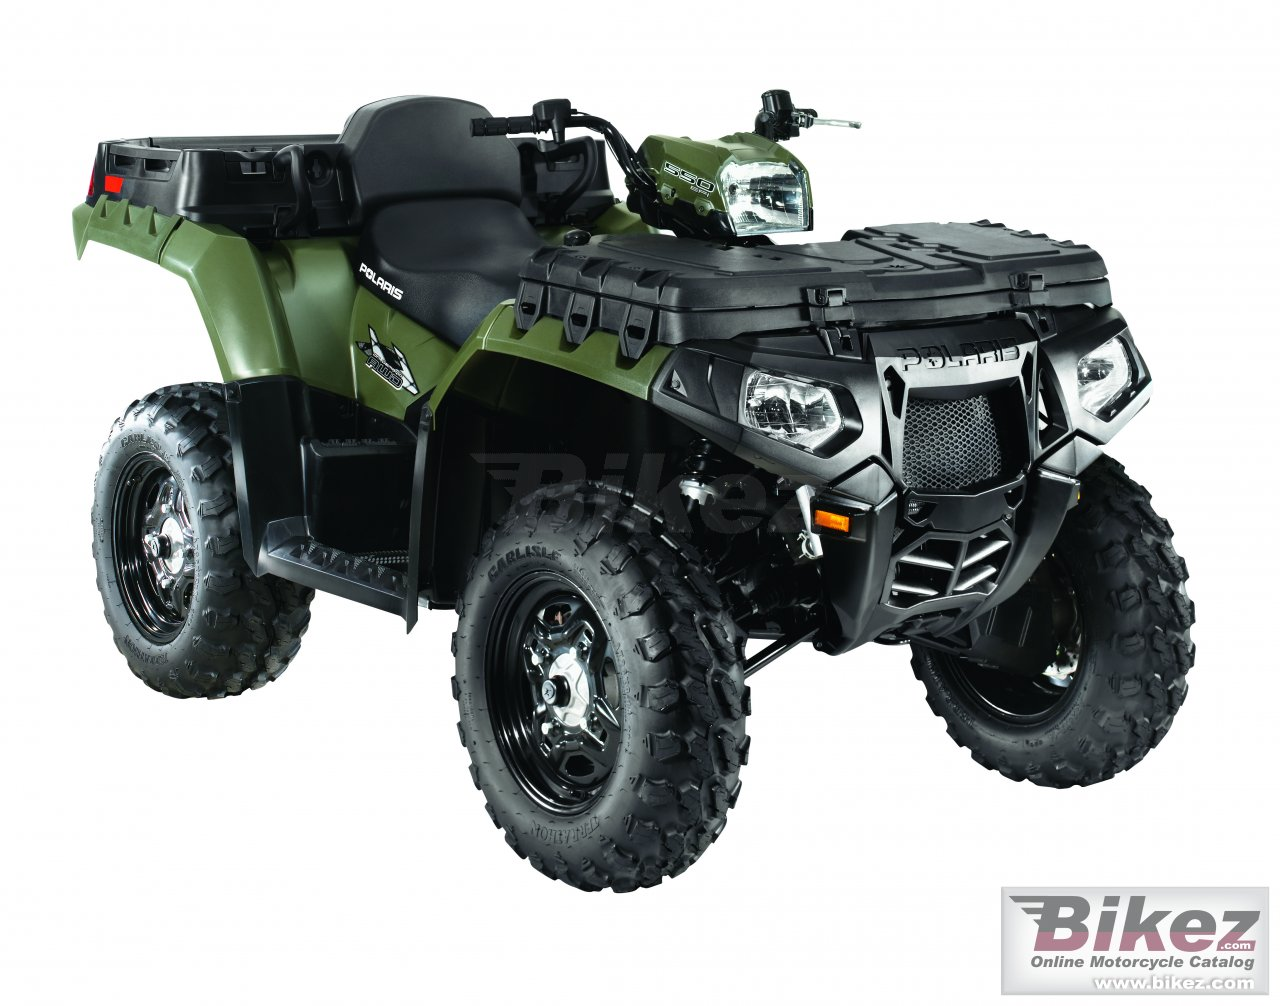 Big Polaris sportsman 550 x2 picture and wallpaper from Bikez.com